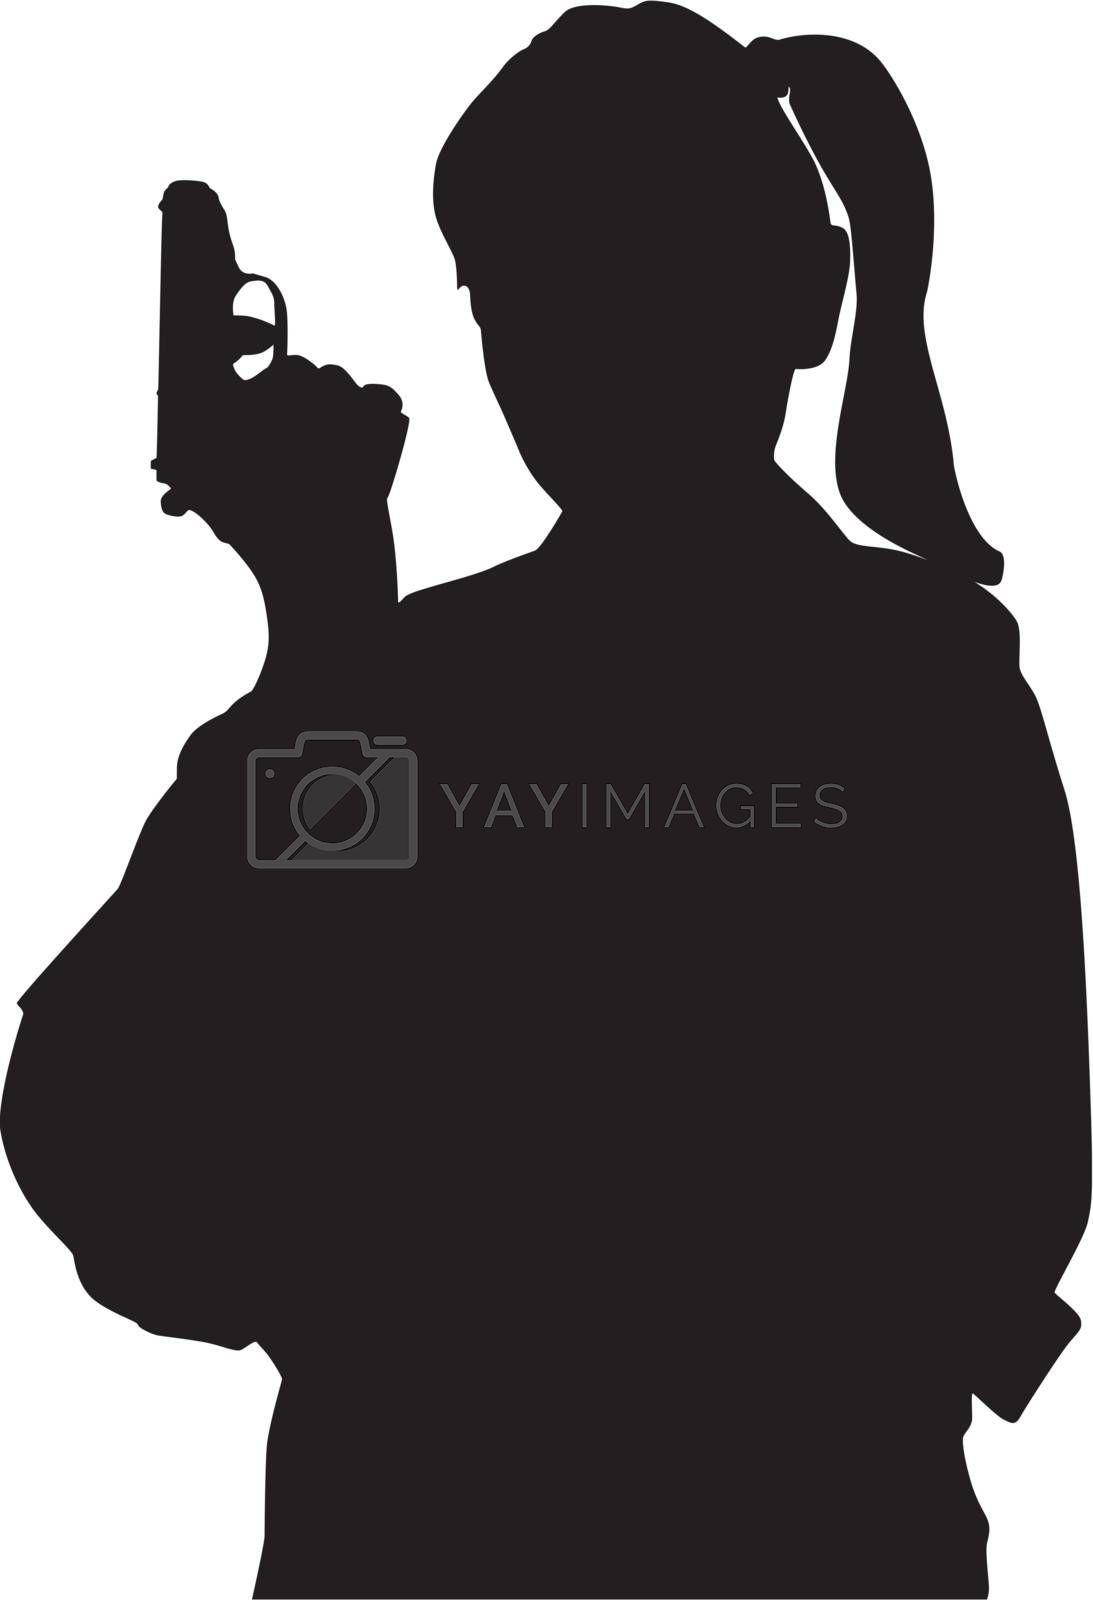 Royalty free image of Woman with gun by sattva